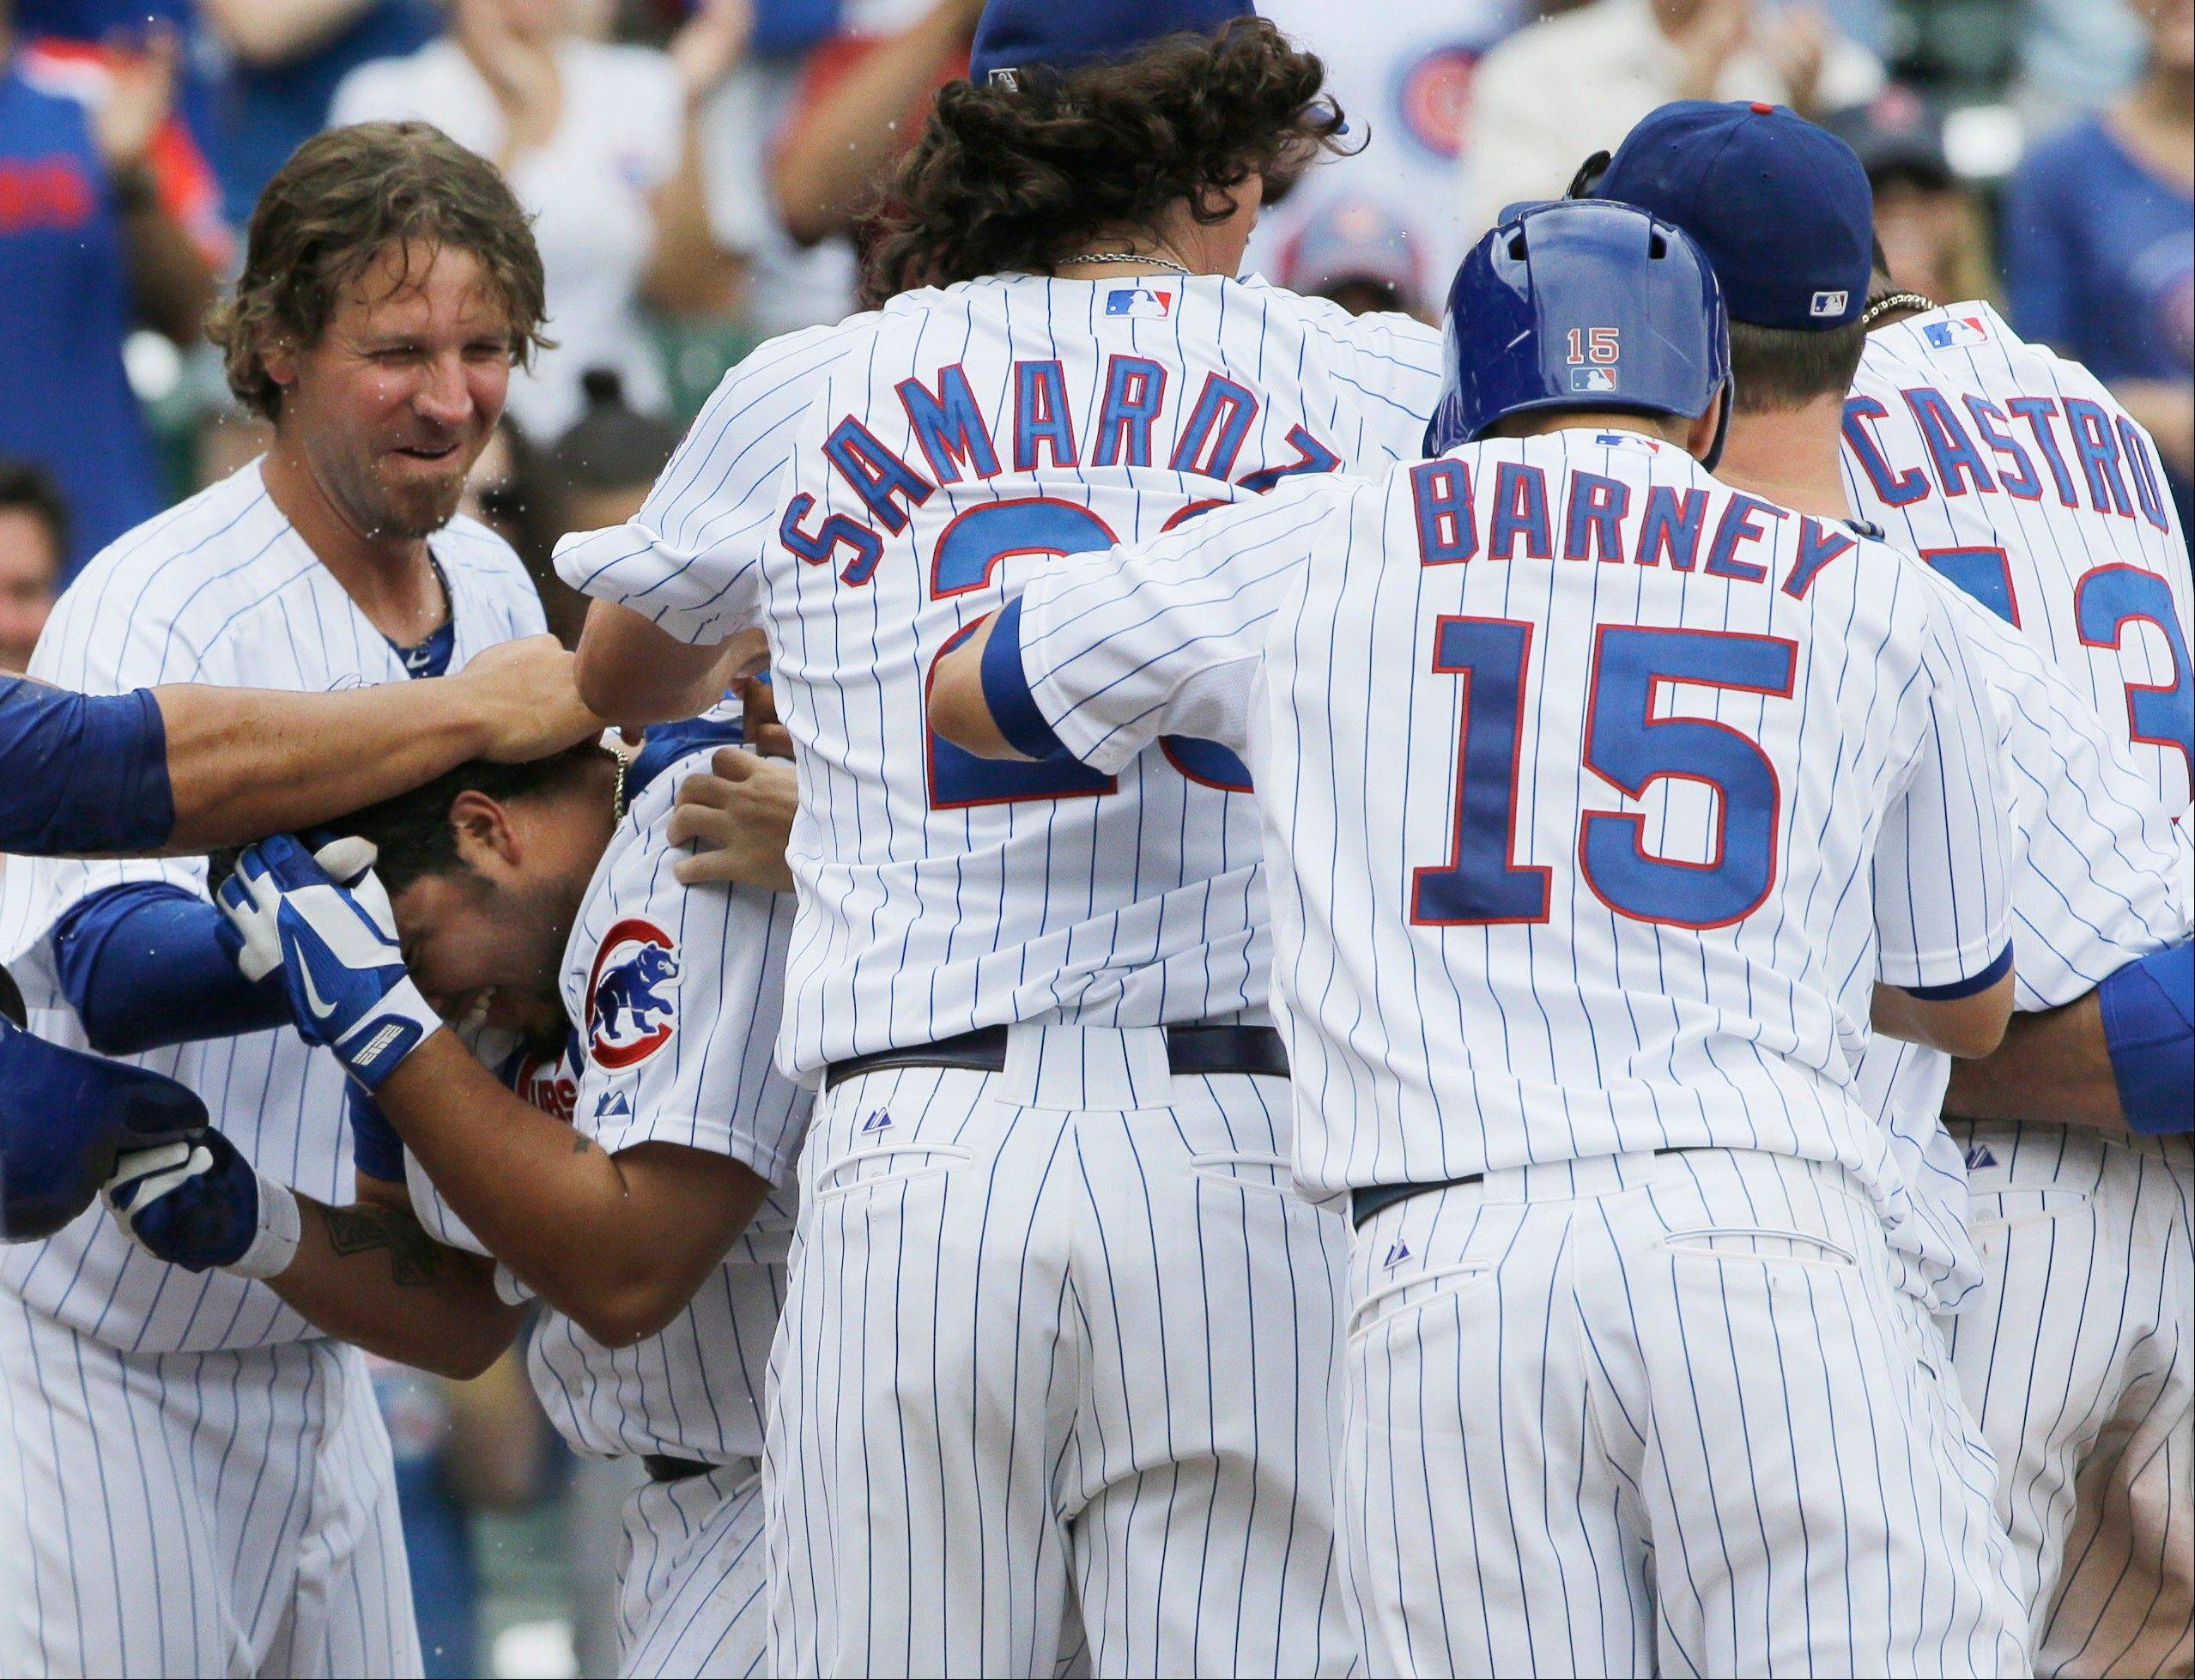 The Cubs� Dioner Navarro, lower left, celebrates with teammates after his game-ending sacrifice fly in the 11th inning Sunday at Wrigley Field.